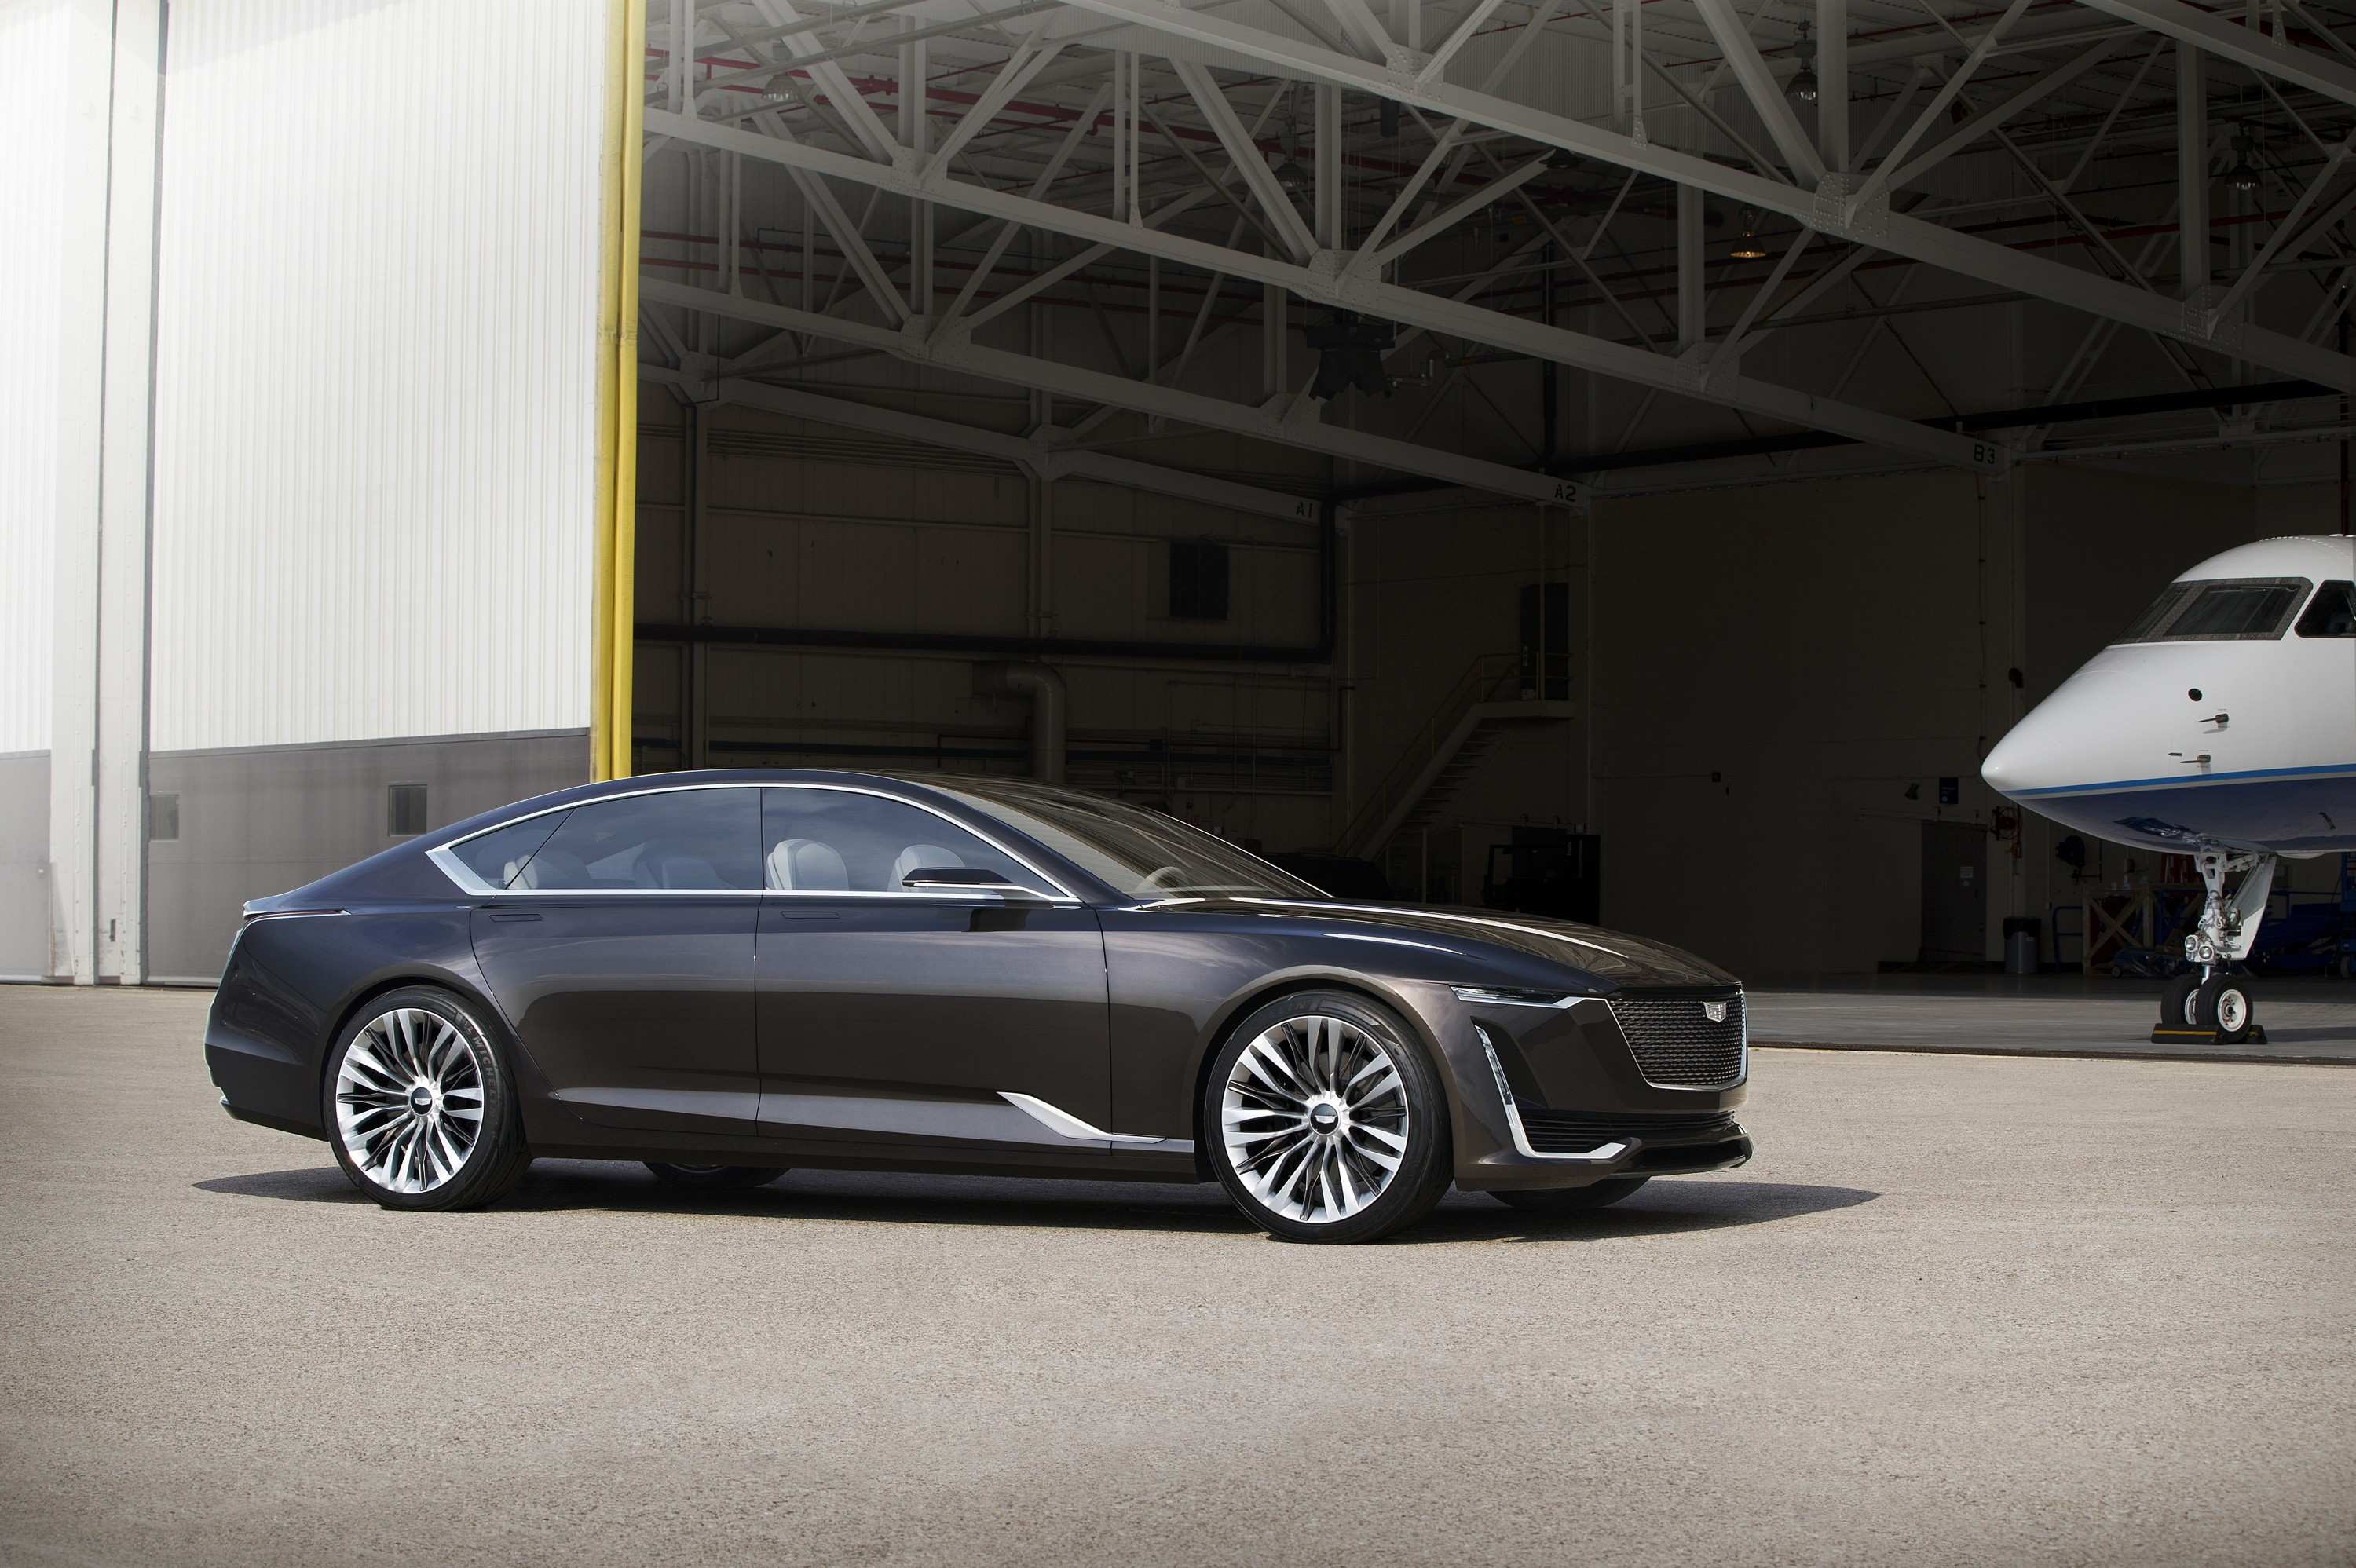 18 New Cadillac Sedans 2020 Release Date And Concept